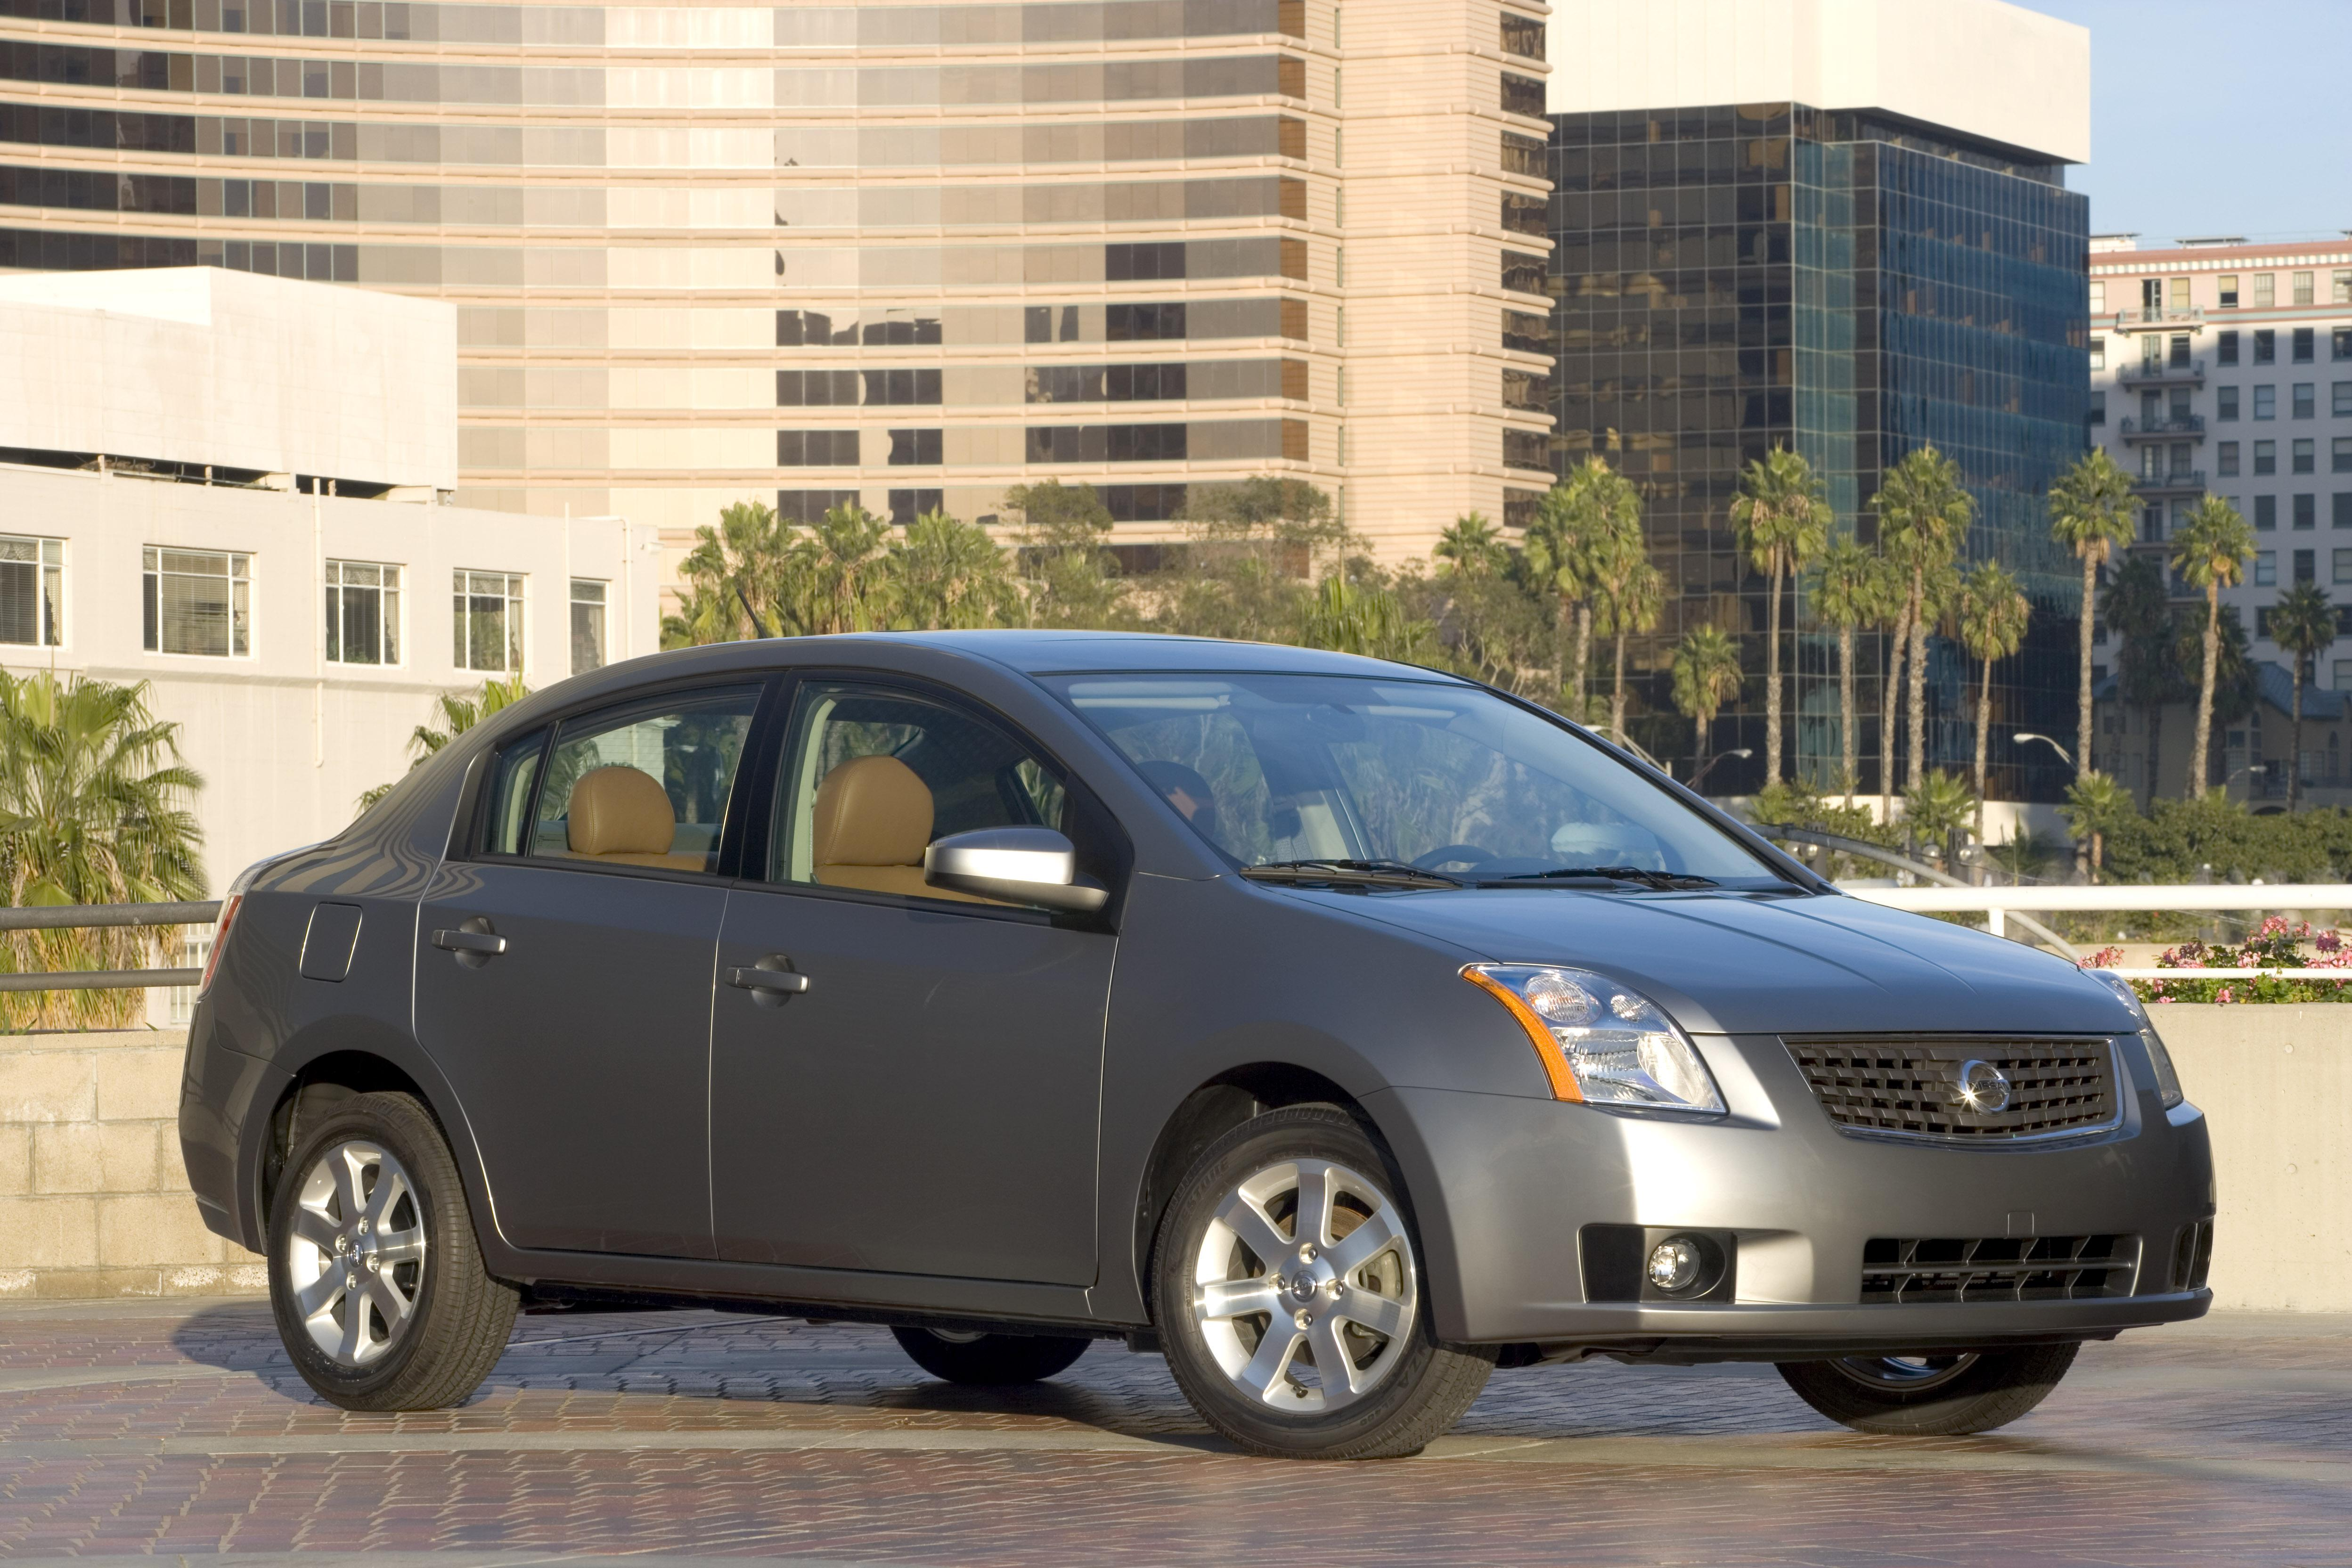 2007 Nissan Sentra Prices Announced | Top Speed